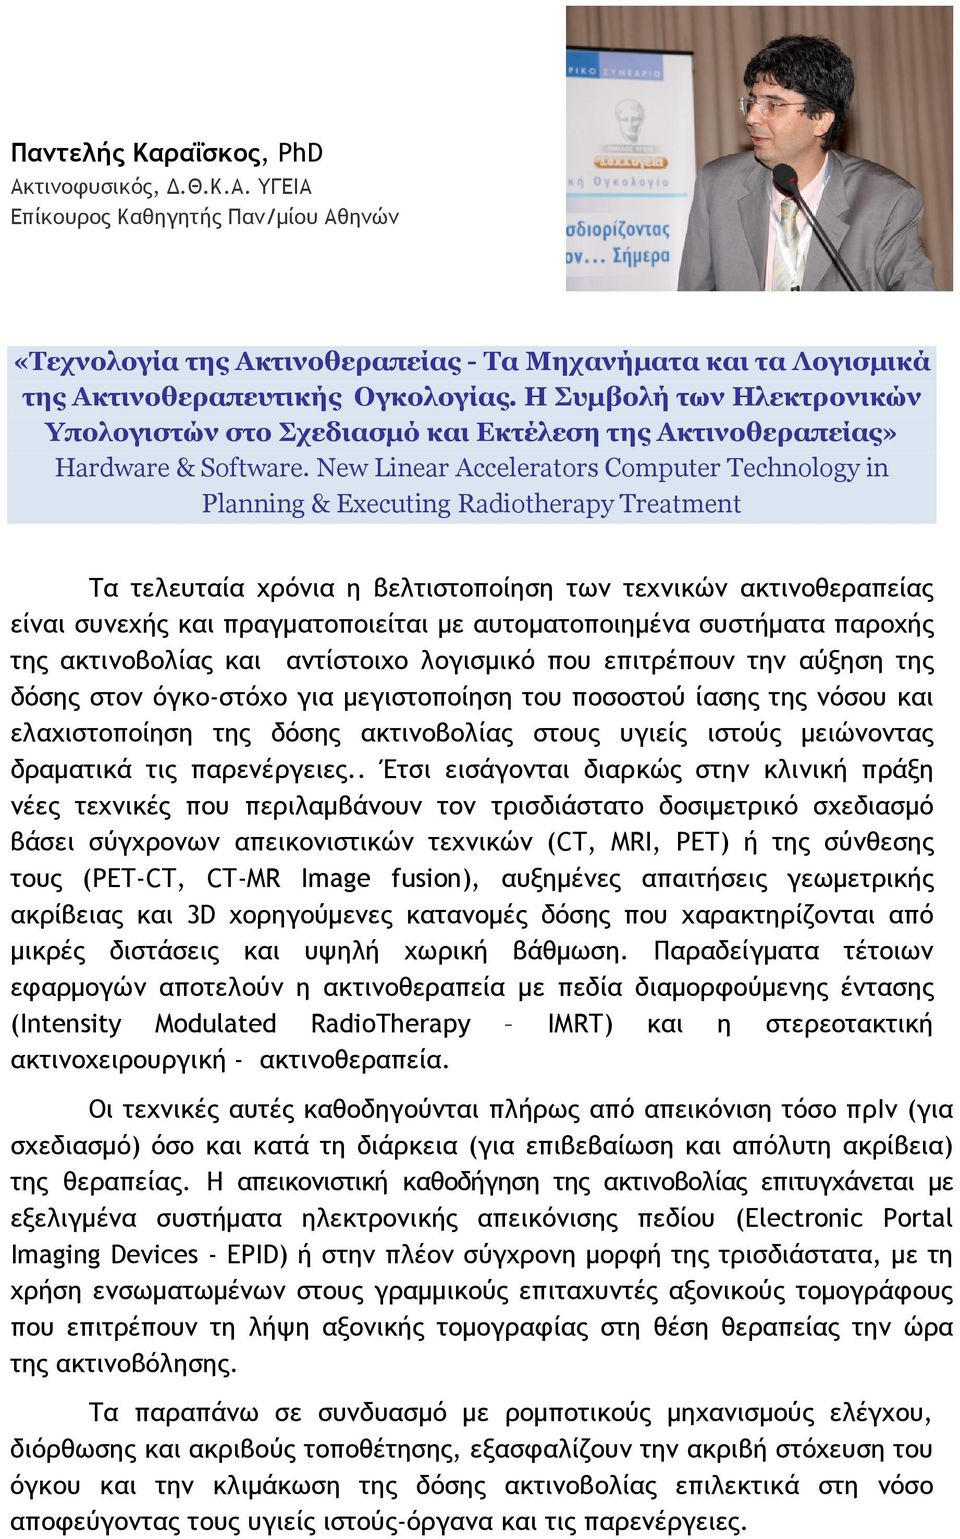 New Linear Accelerators Computer Technology in Planning & Executing Radiotherapy Treatment Τα τελευταία χρόνια η βελτιστοποίηση των τεχνικών ακτινοθεραπείας είναι συνεχής και πραγµατοποιείται µε